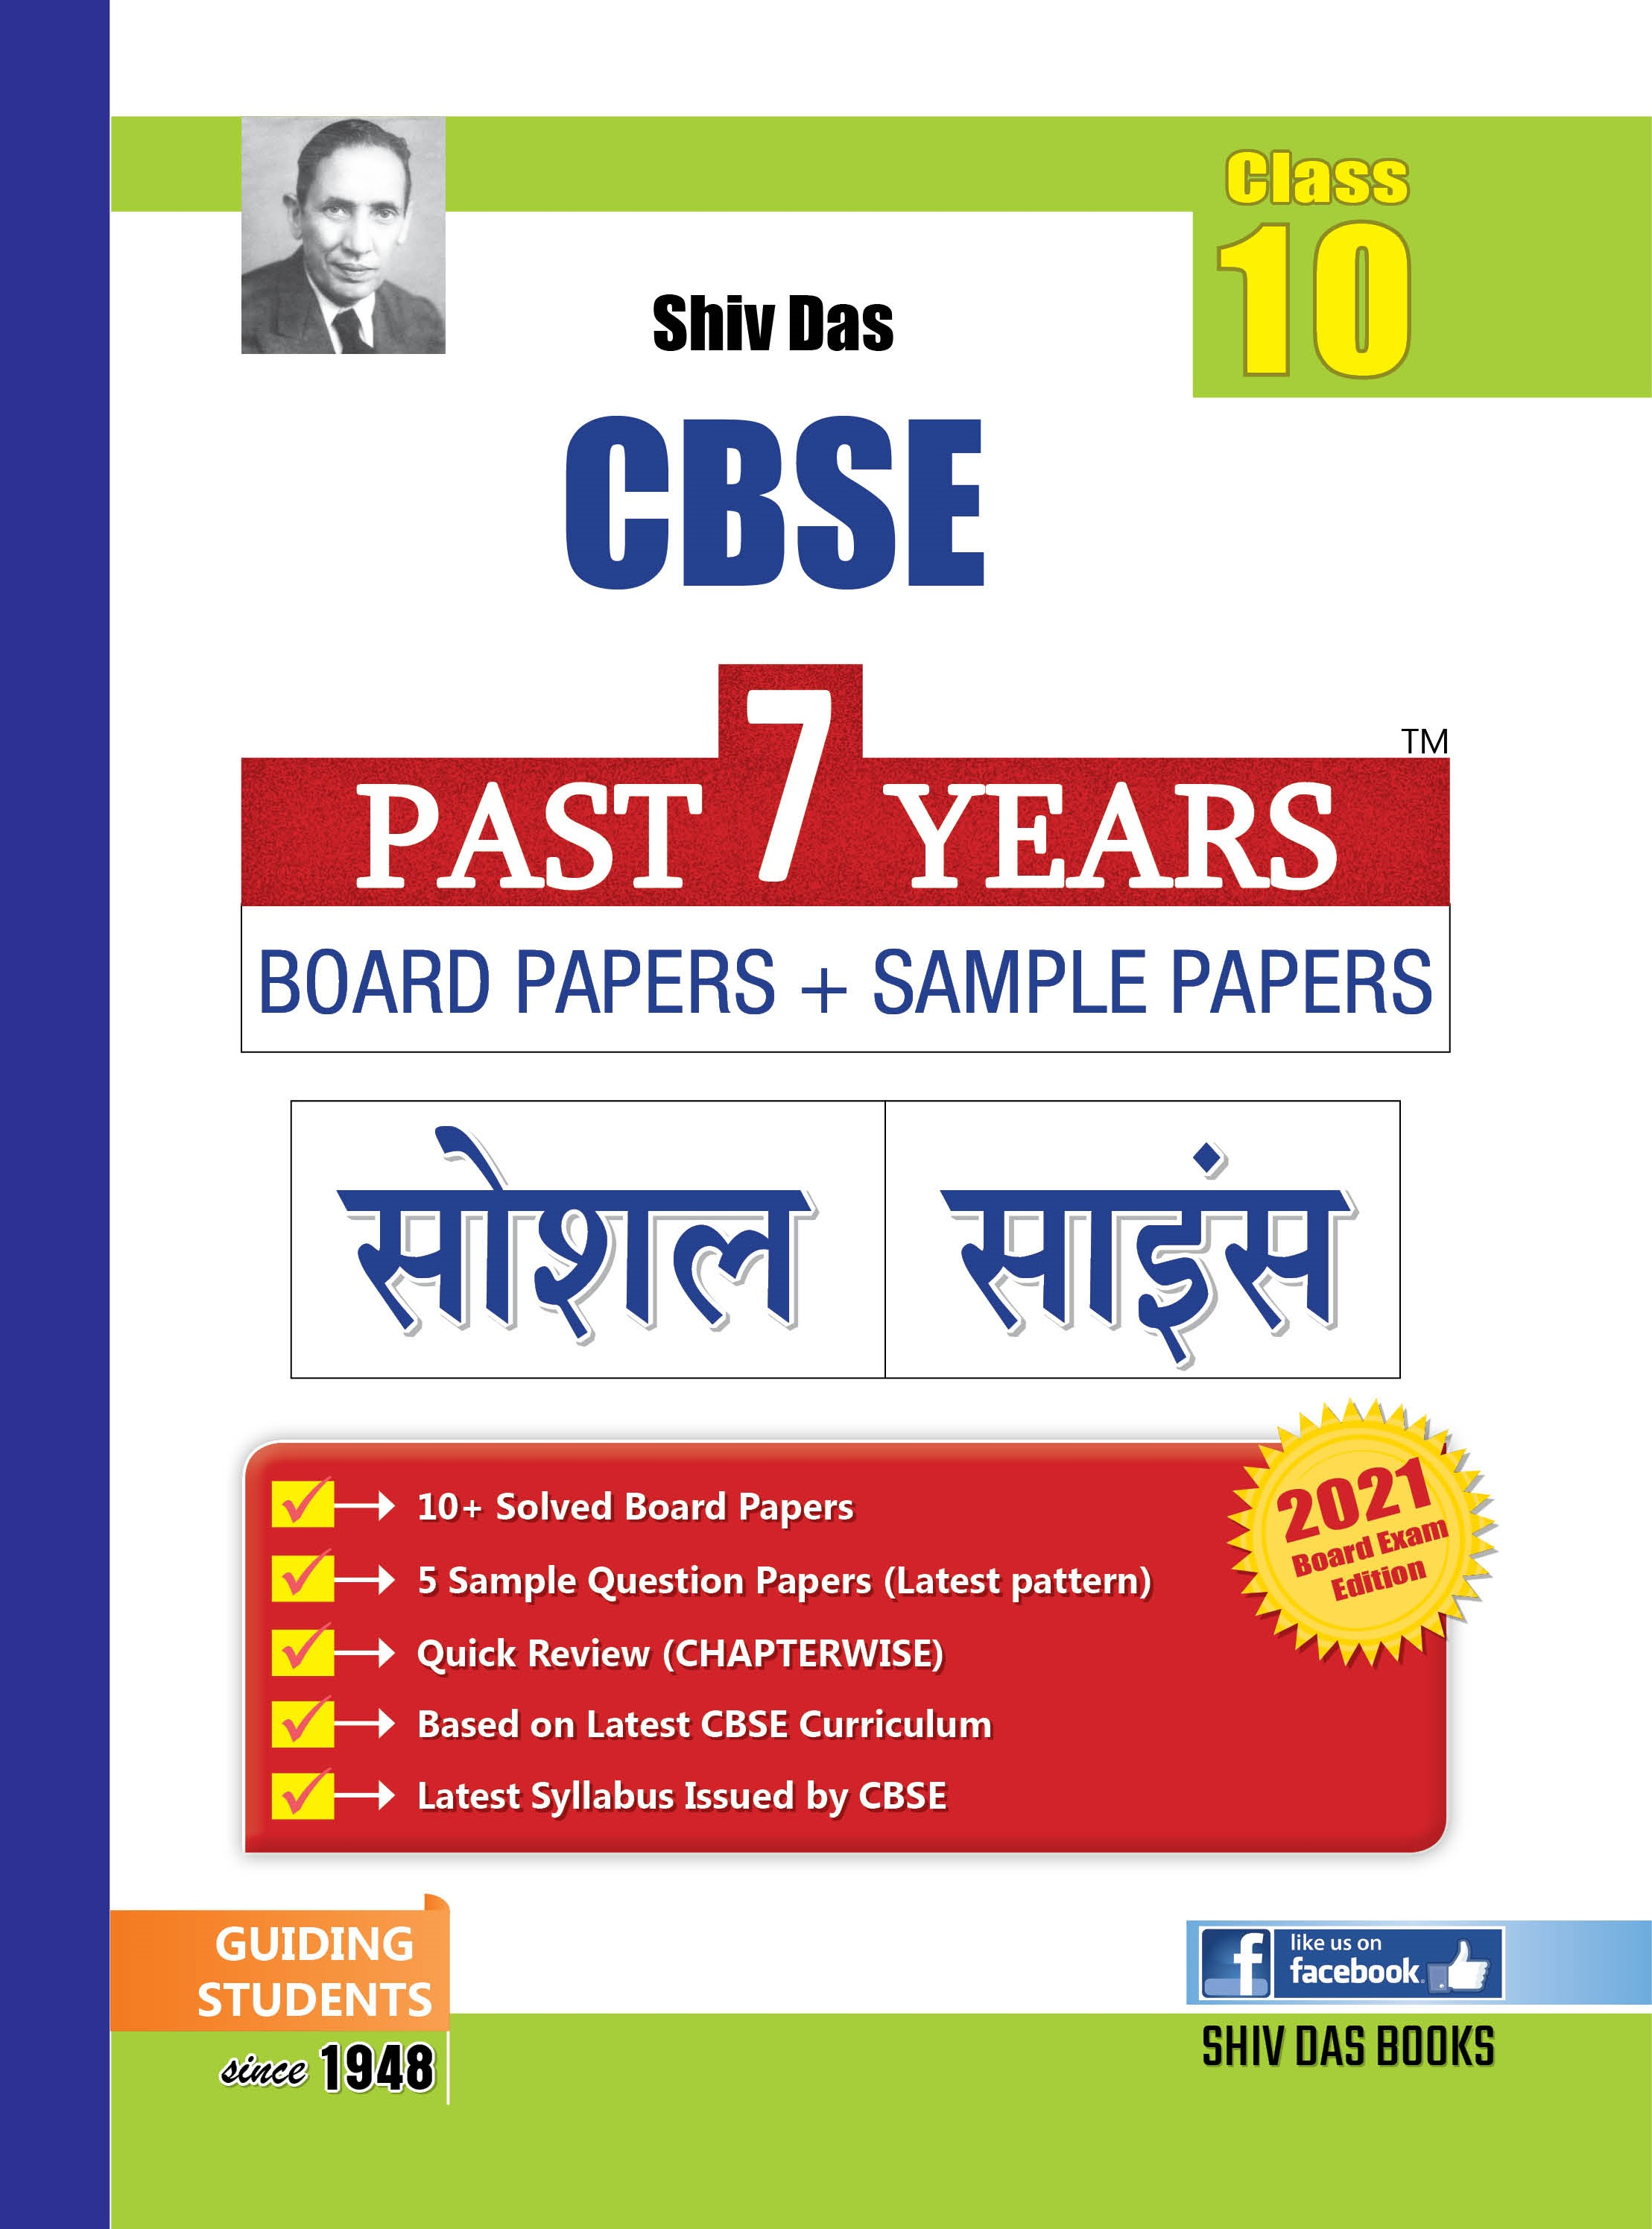 CBSE Past 7 Years Solved Board Papers and Sample Papers for Class 10 Samajik Vigyan By SHIVDAS (2021 Board Exam Edition)